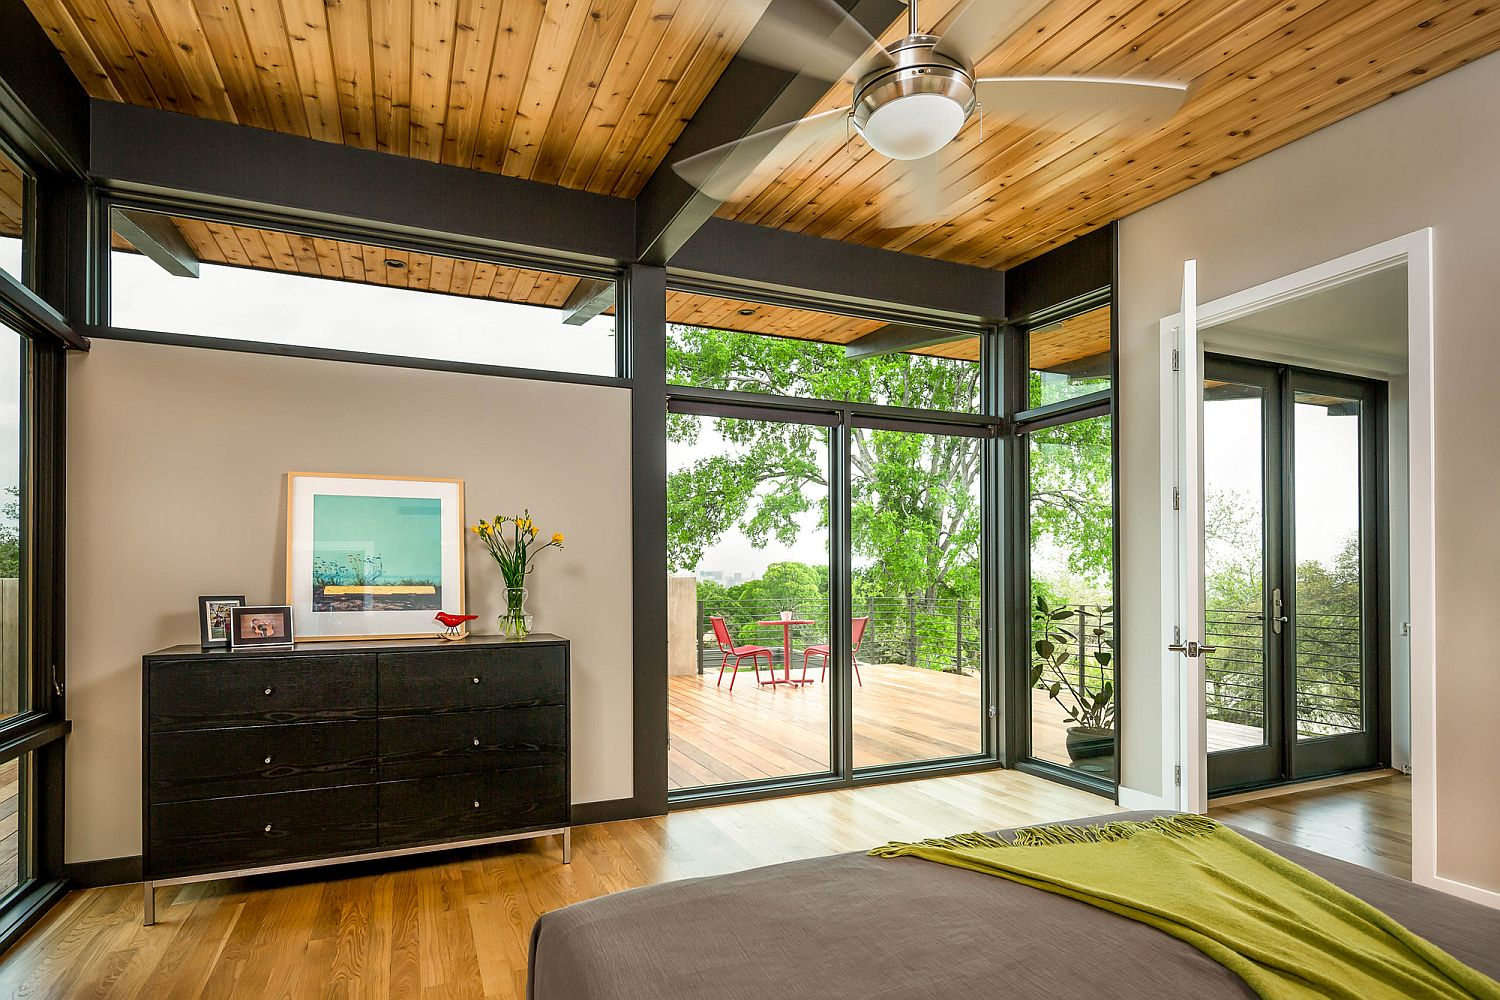 Metallic beams and wood create a cozy bedroom with many windows and glass walls